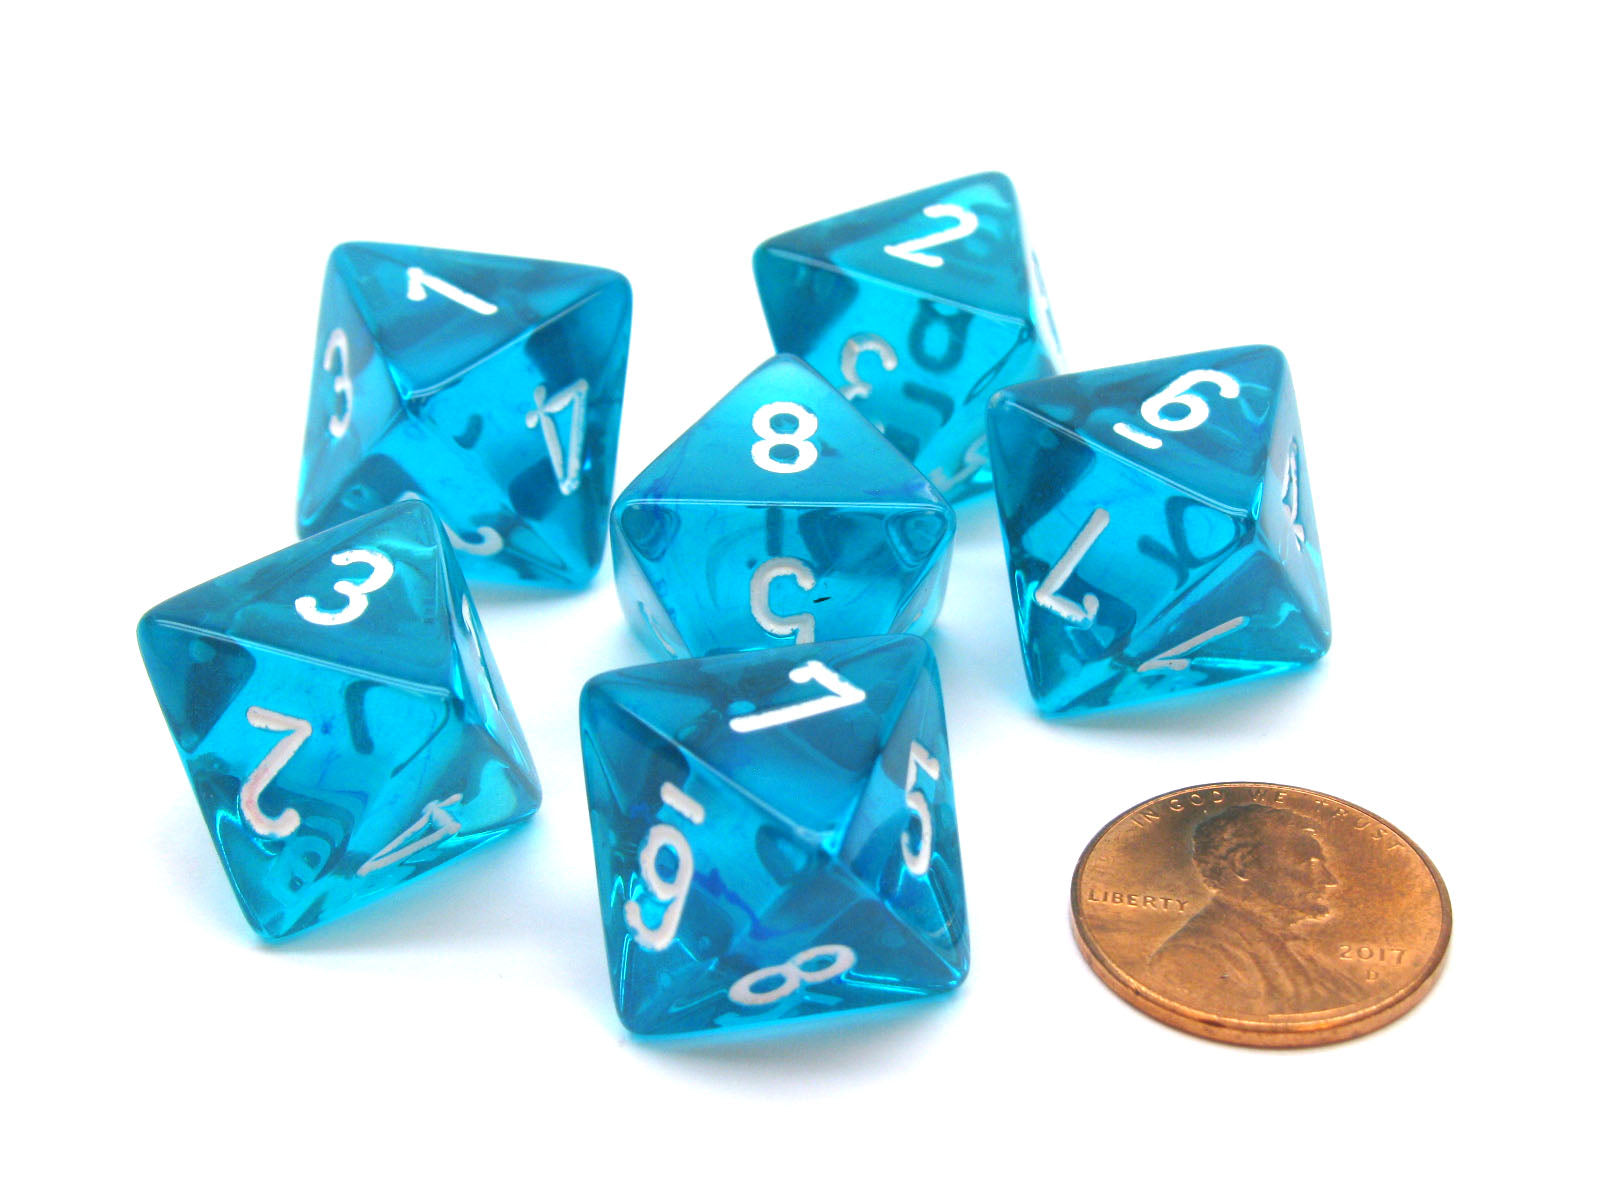 Translucent 15mm 8 Sided D8 Chessex Dice, 6 Pieces - Teal with White